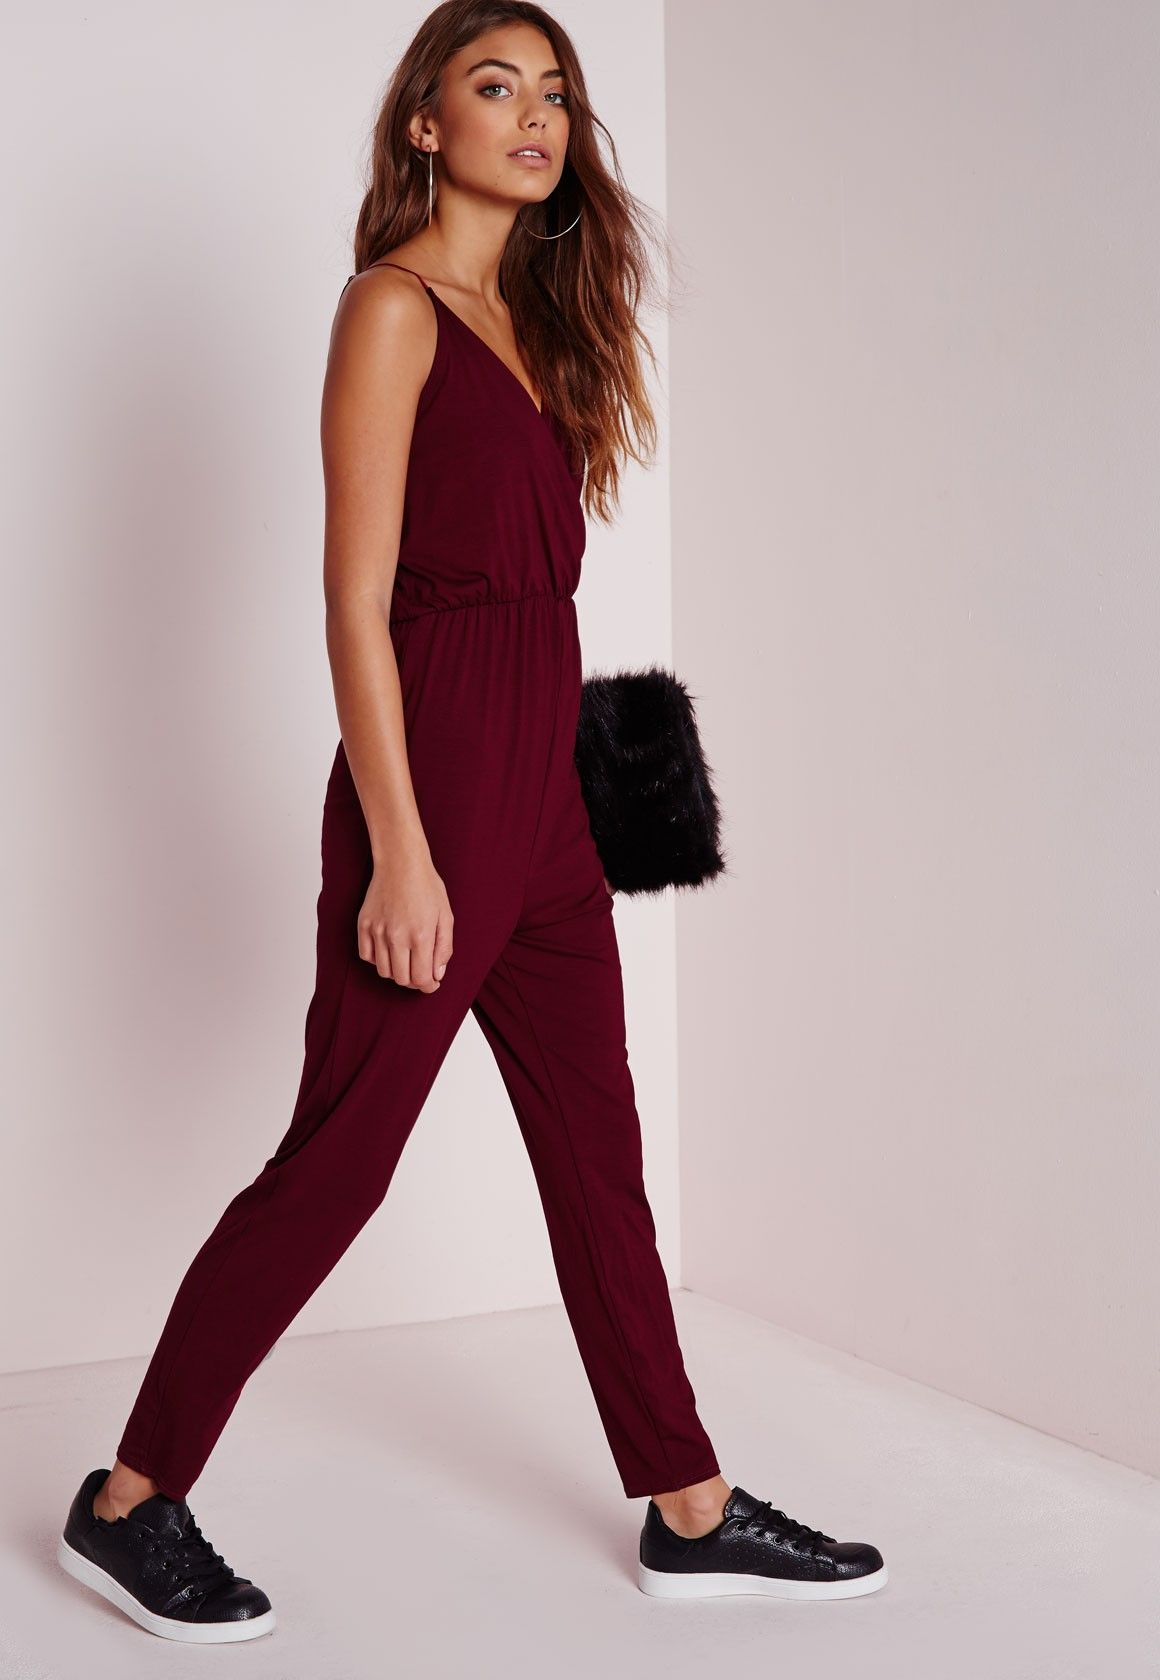 1bb9f0ed87 Good things come in small packages. Shop our Missguided Petite range ...